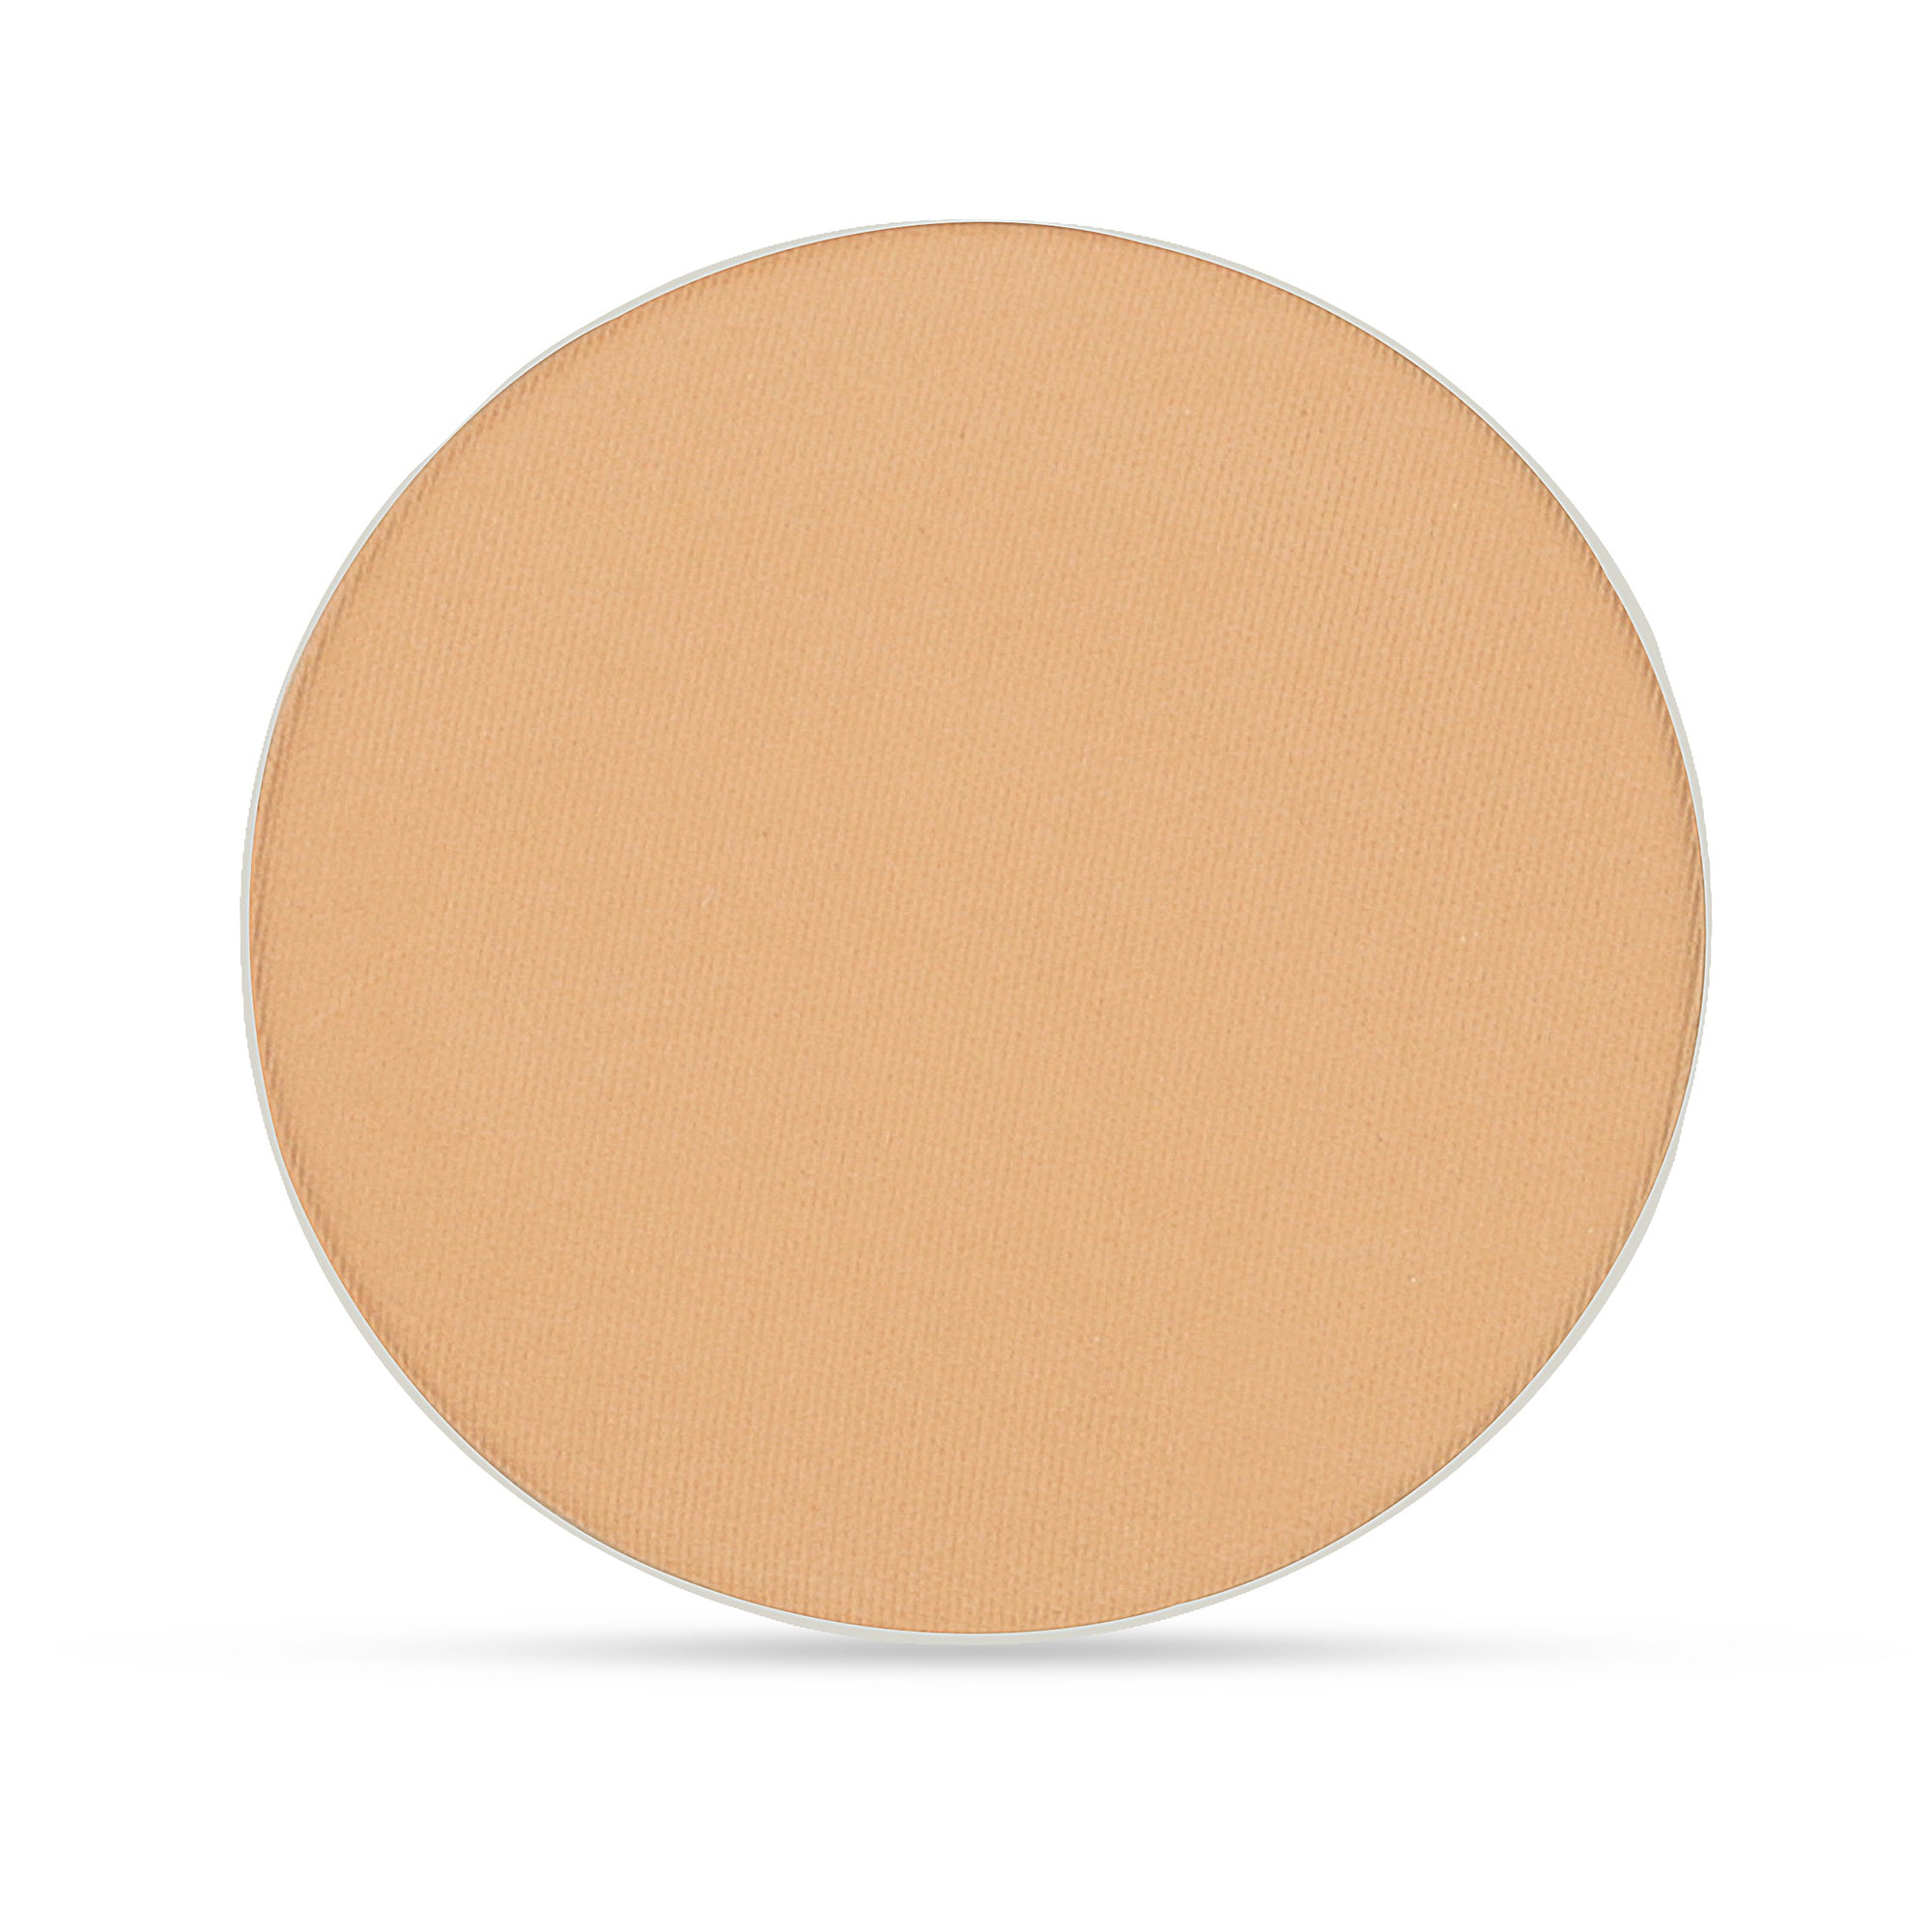 Clove and Hallow PRESSED MINERAL FOUNDATION REFILL PAN